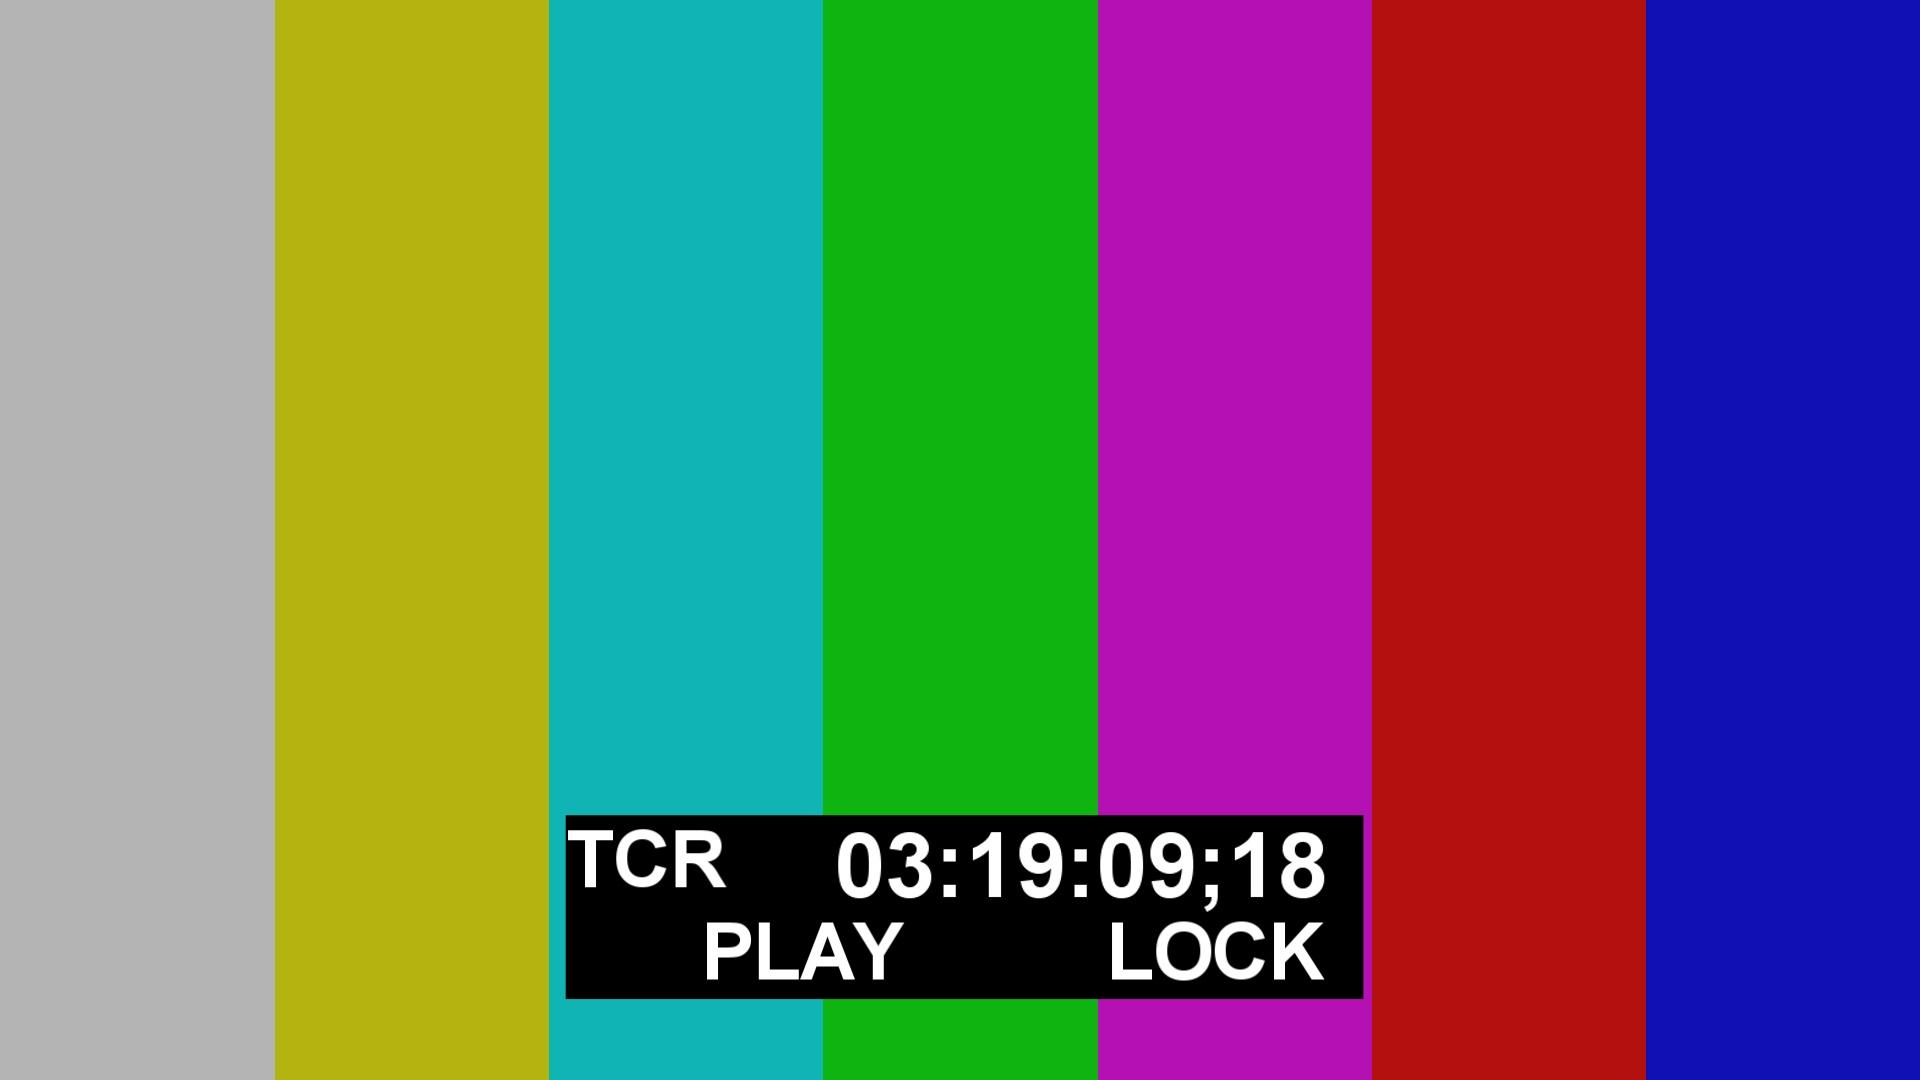 cowtcrplaylock3hoursplusversion2